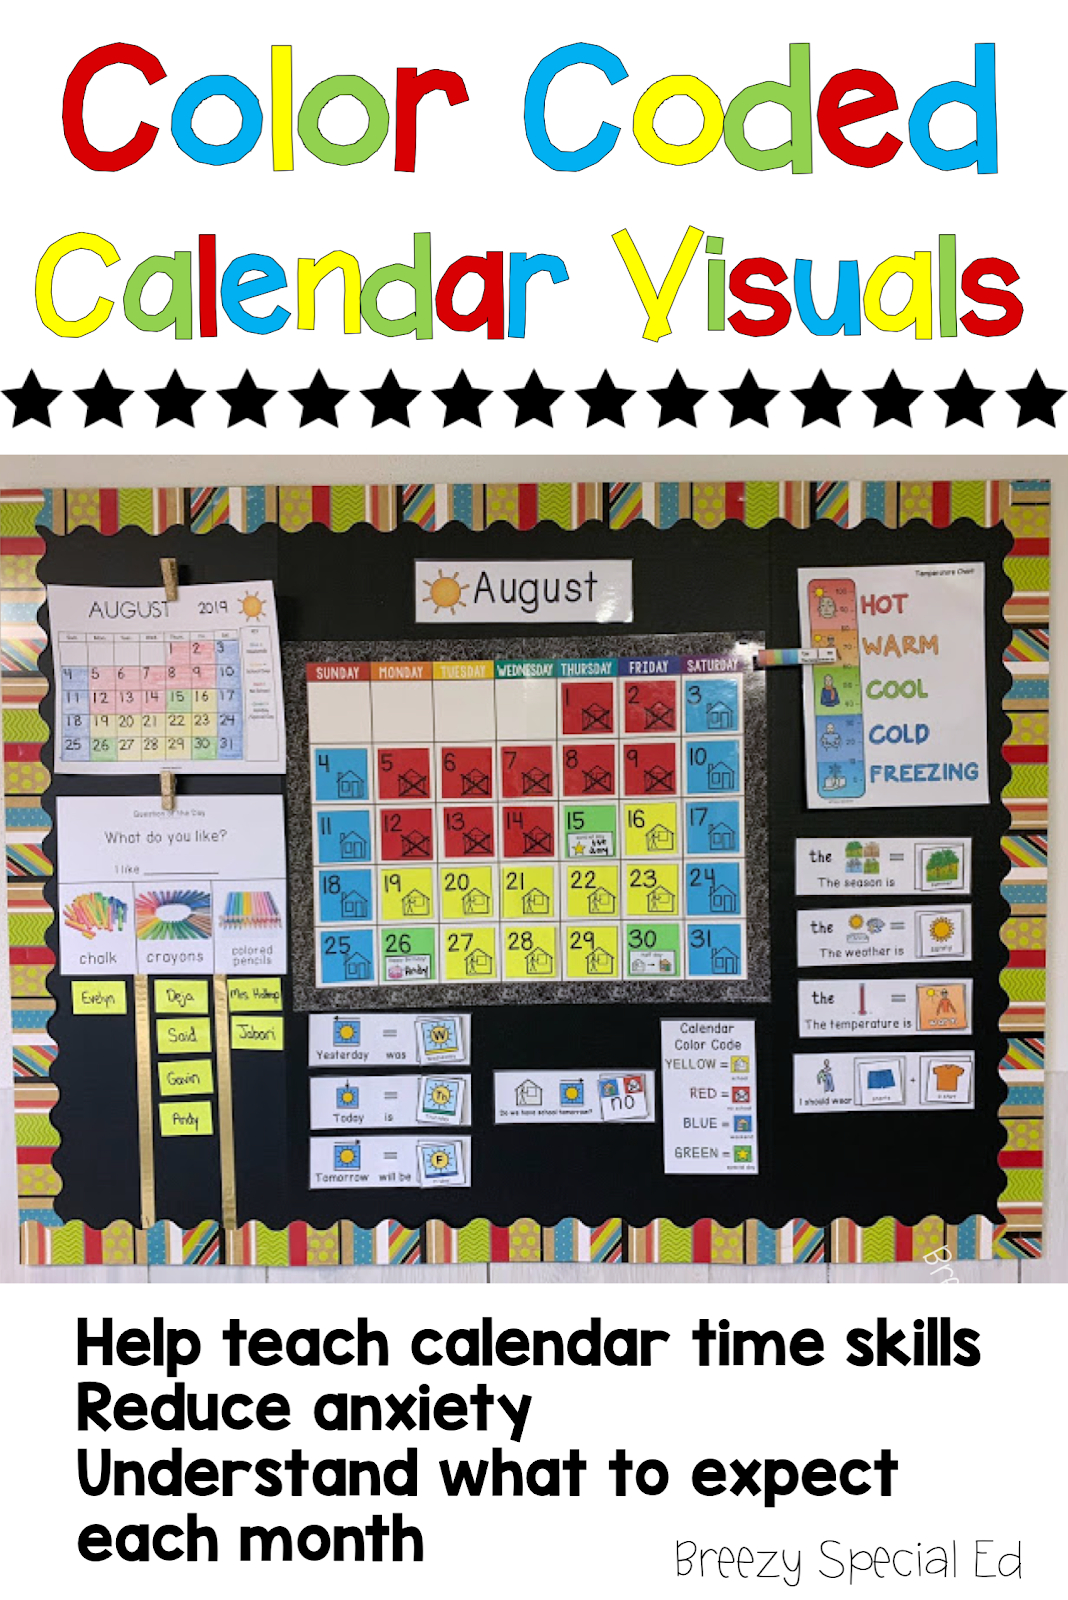 Color Coded Calendar Visuals – Breezy Special Ed Free Color Coded Calendars